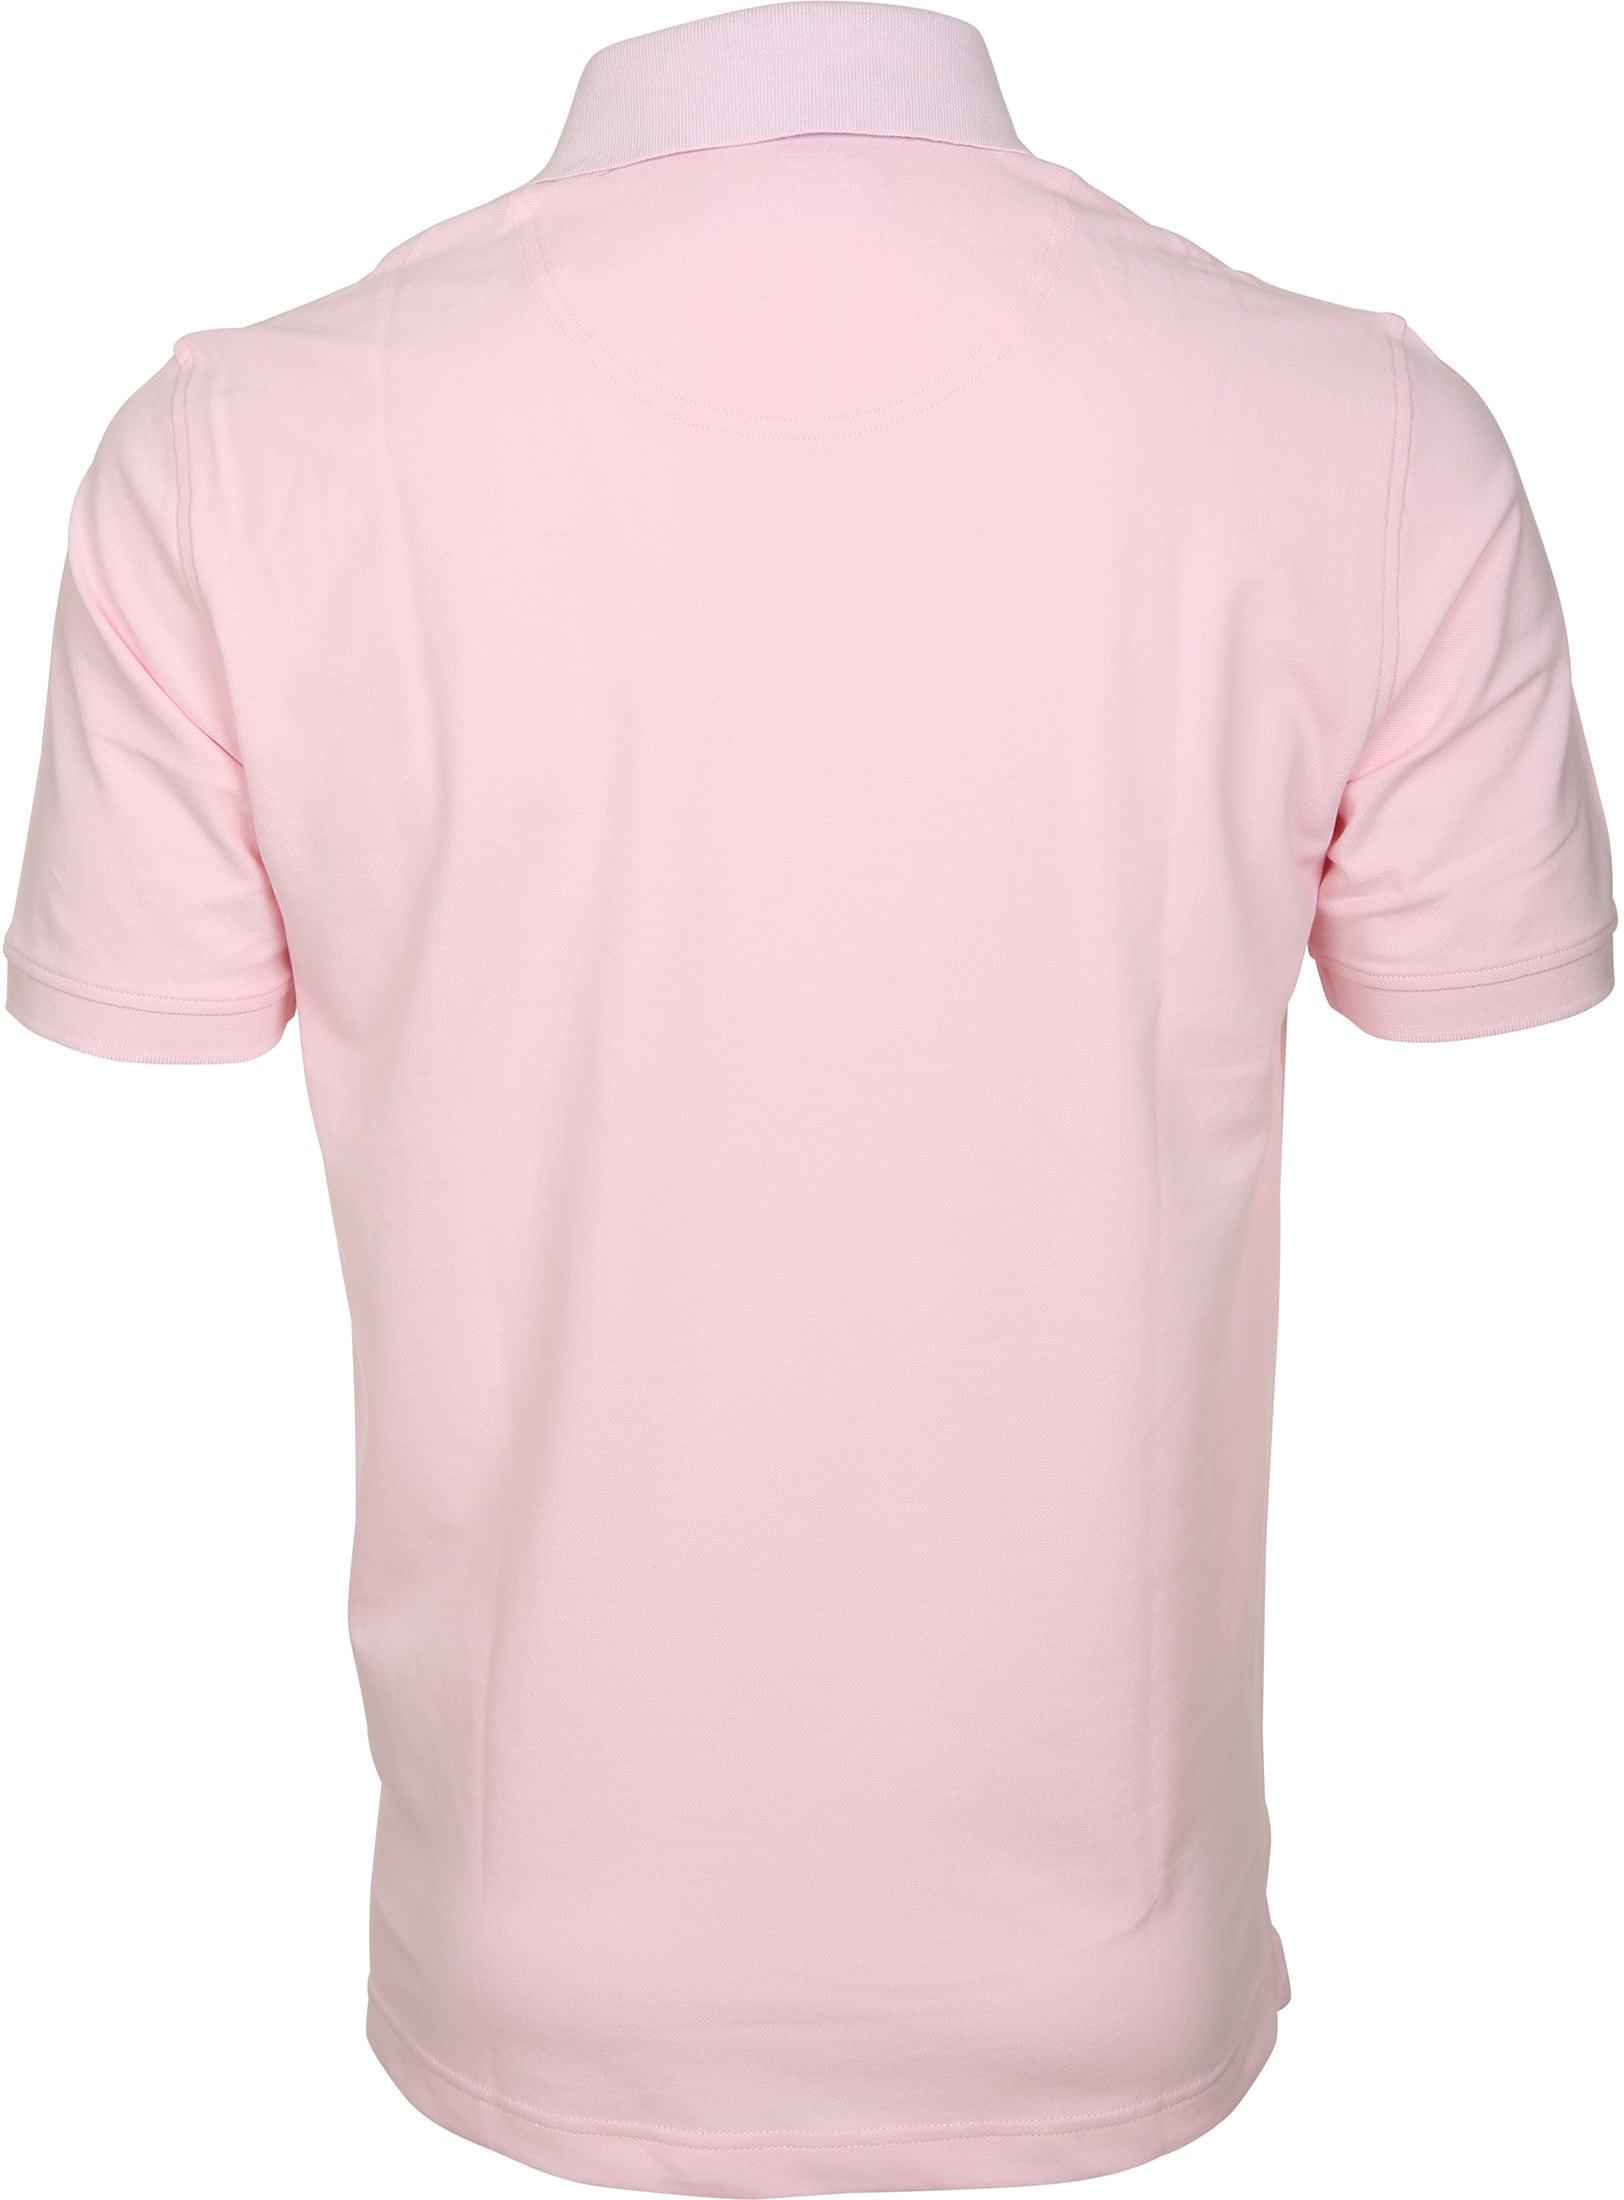 Suitable Poloshirt Basic Rosa foto 4